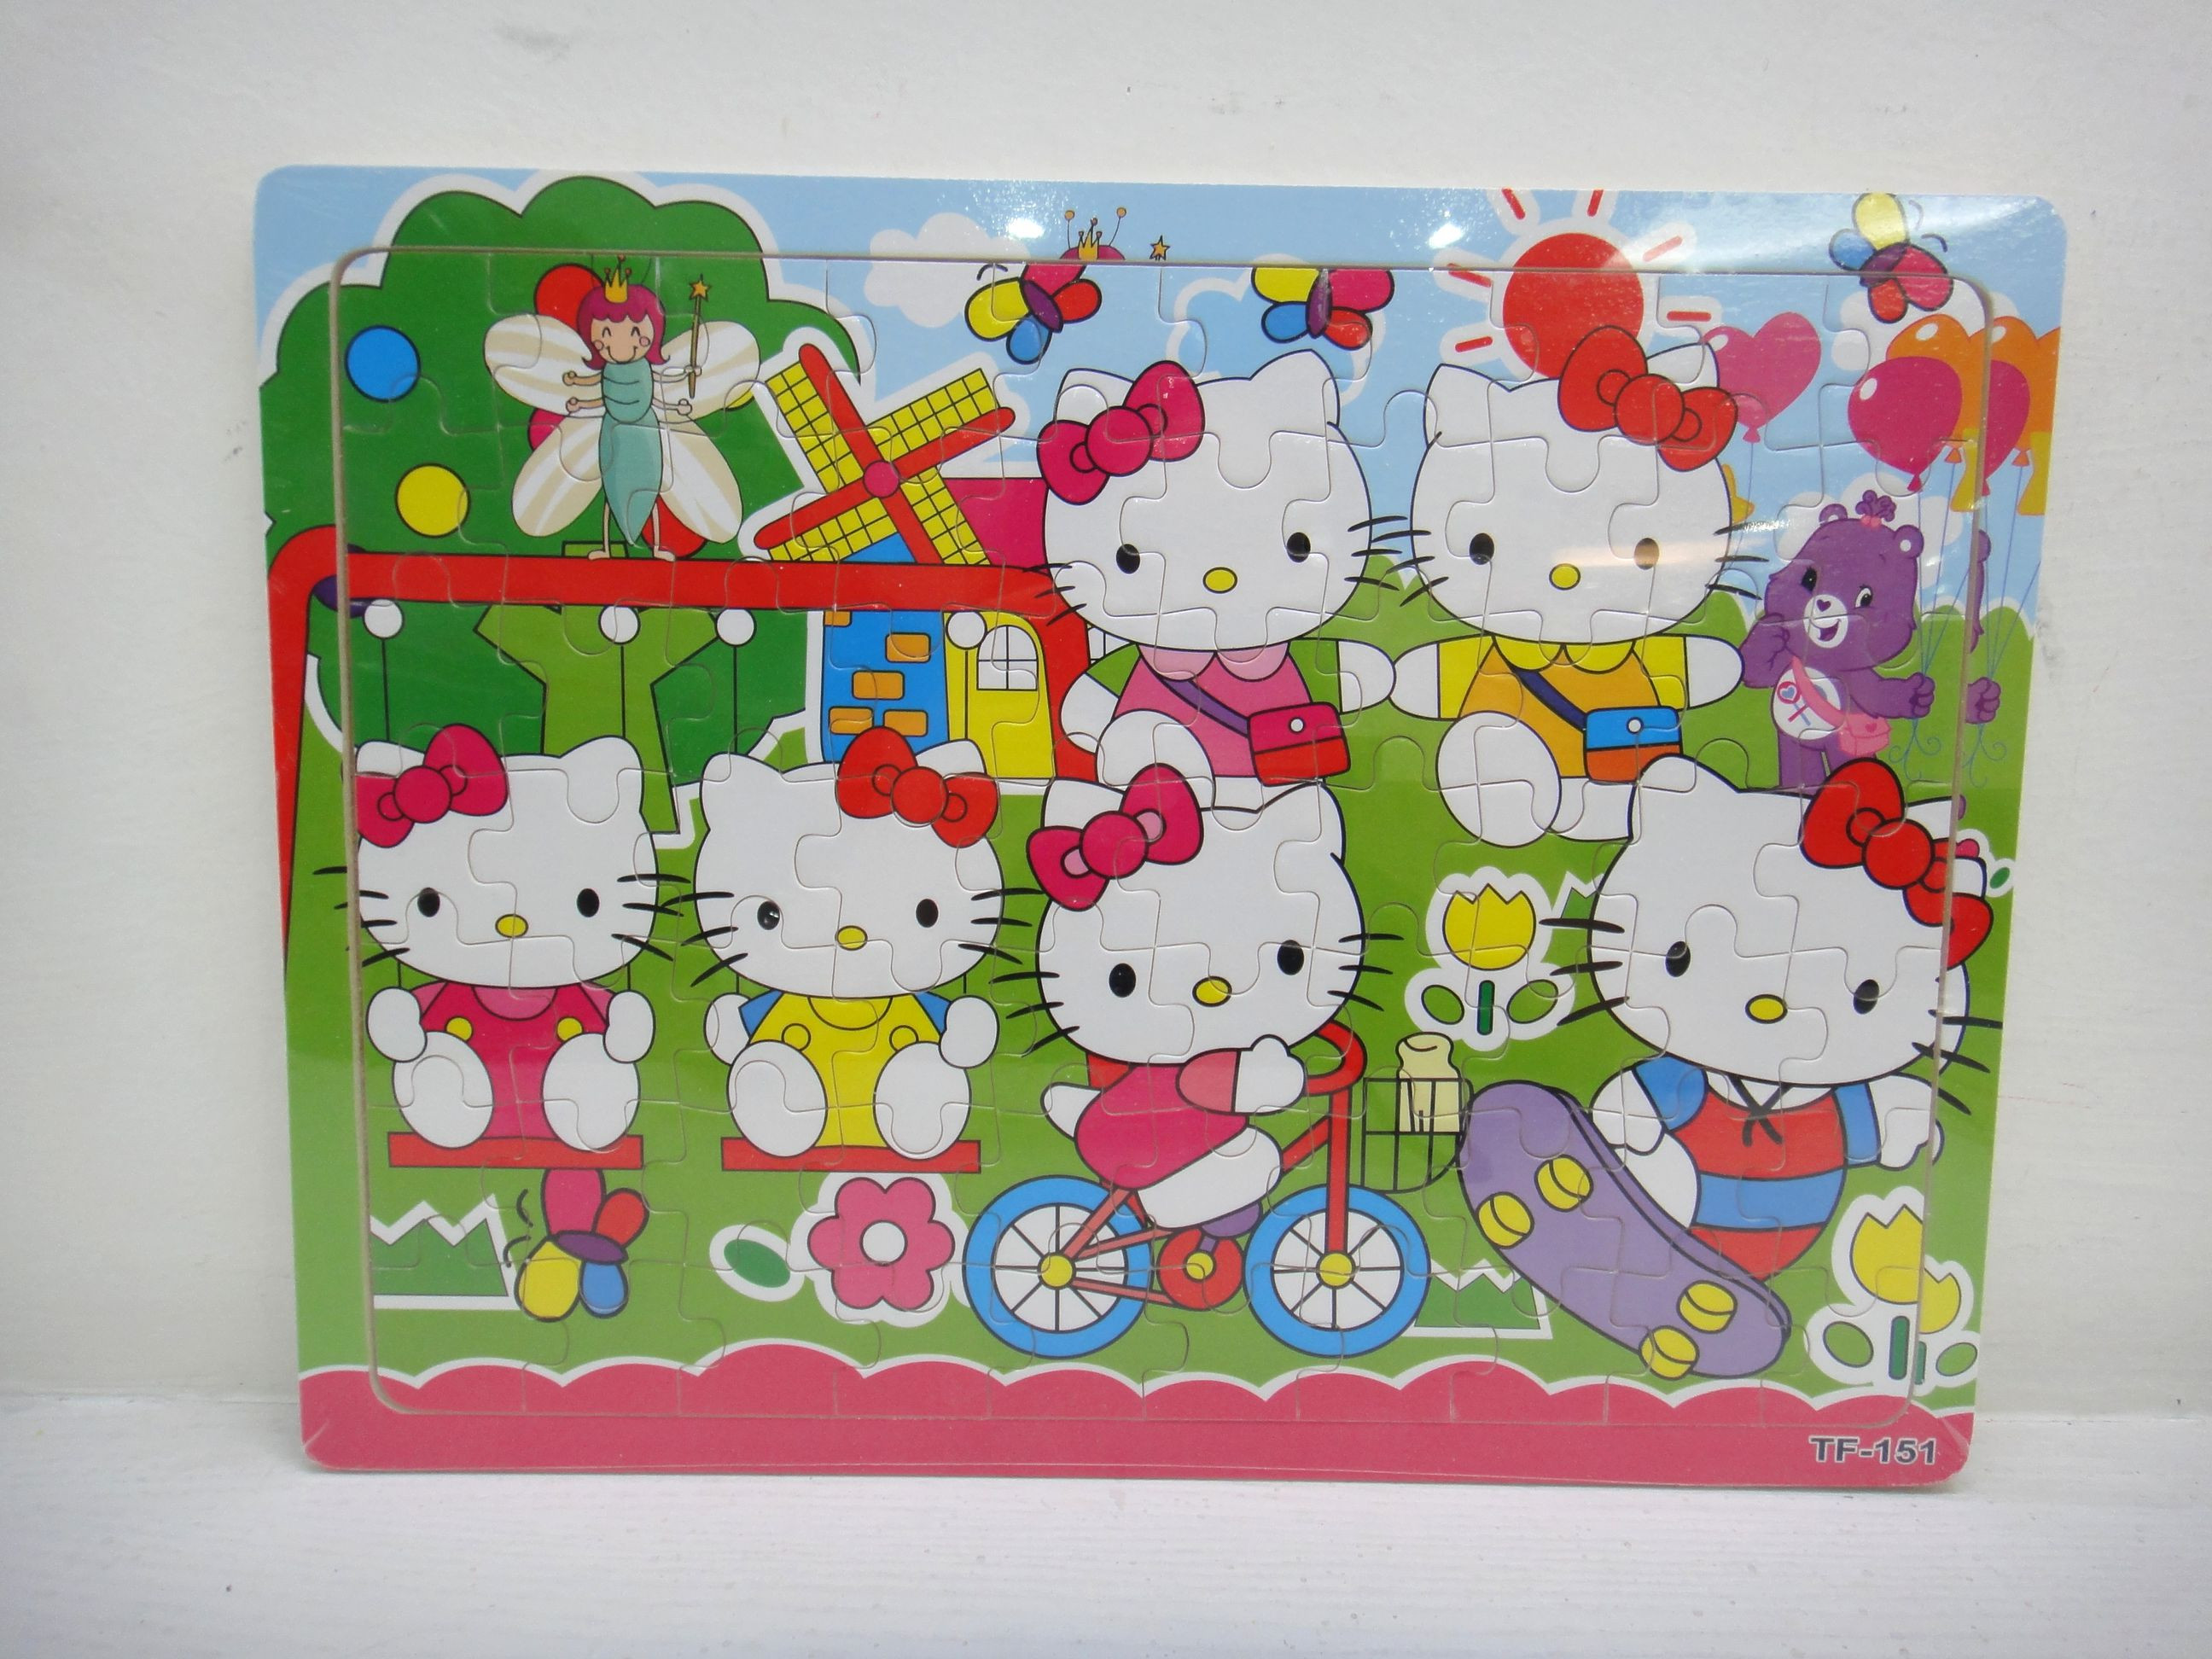 wooden toys hello kitty puzzle,wooden jigsaw puzzle game